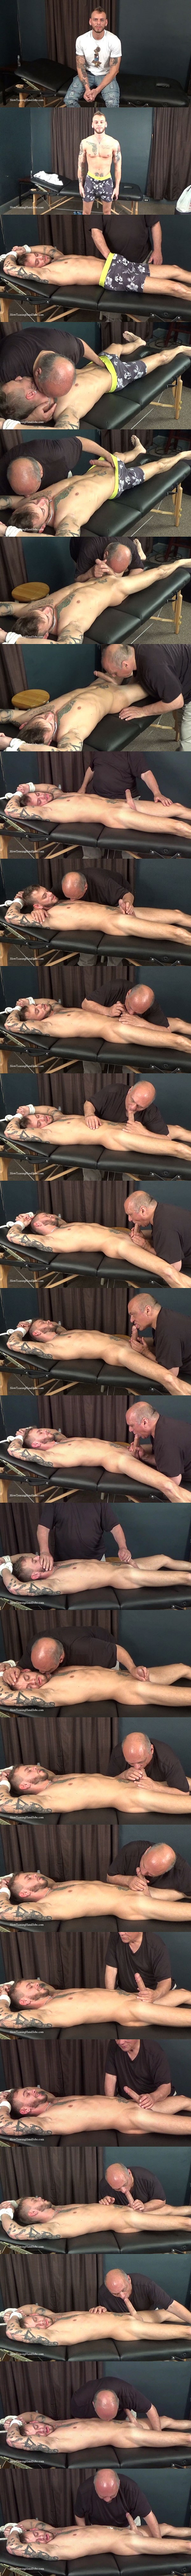 Masculine bisexual inked stud Justin Case gets slowly sucked and edged by master Rich until Justin blows his load in Rich's mouth at Slowteasinghandjobs 01